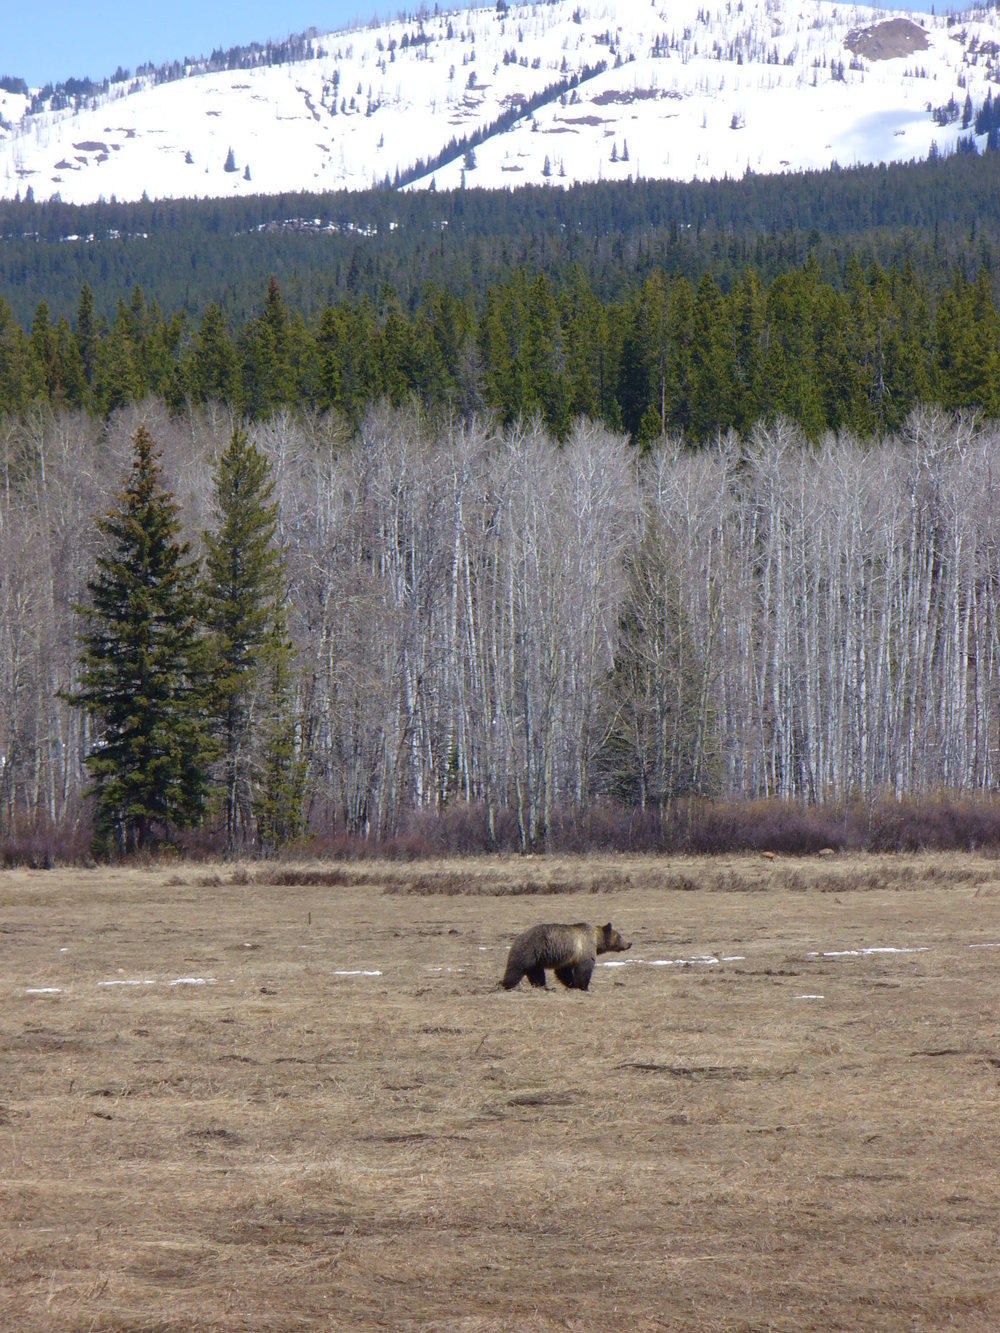 41Grizzly Bear GTNP.JPG